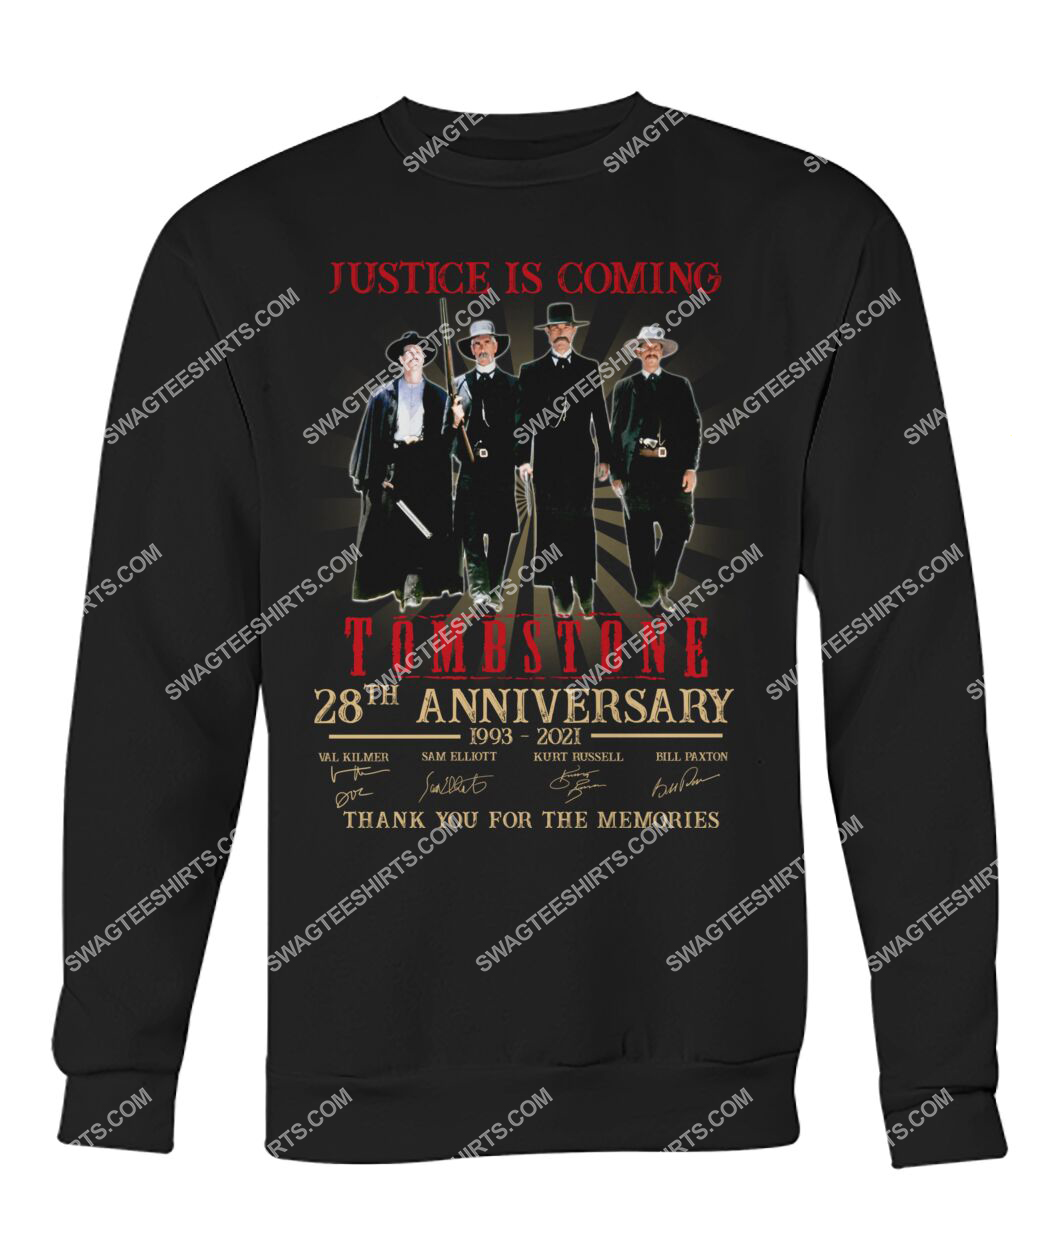 justice is coming tombstone 28th anniversary thank you for the memories sweatshirt 1